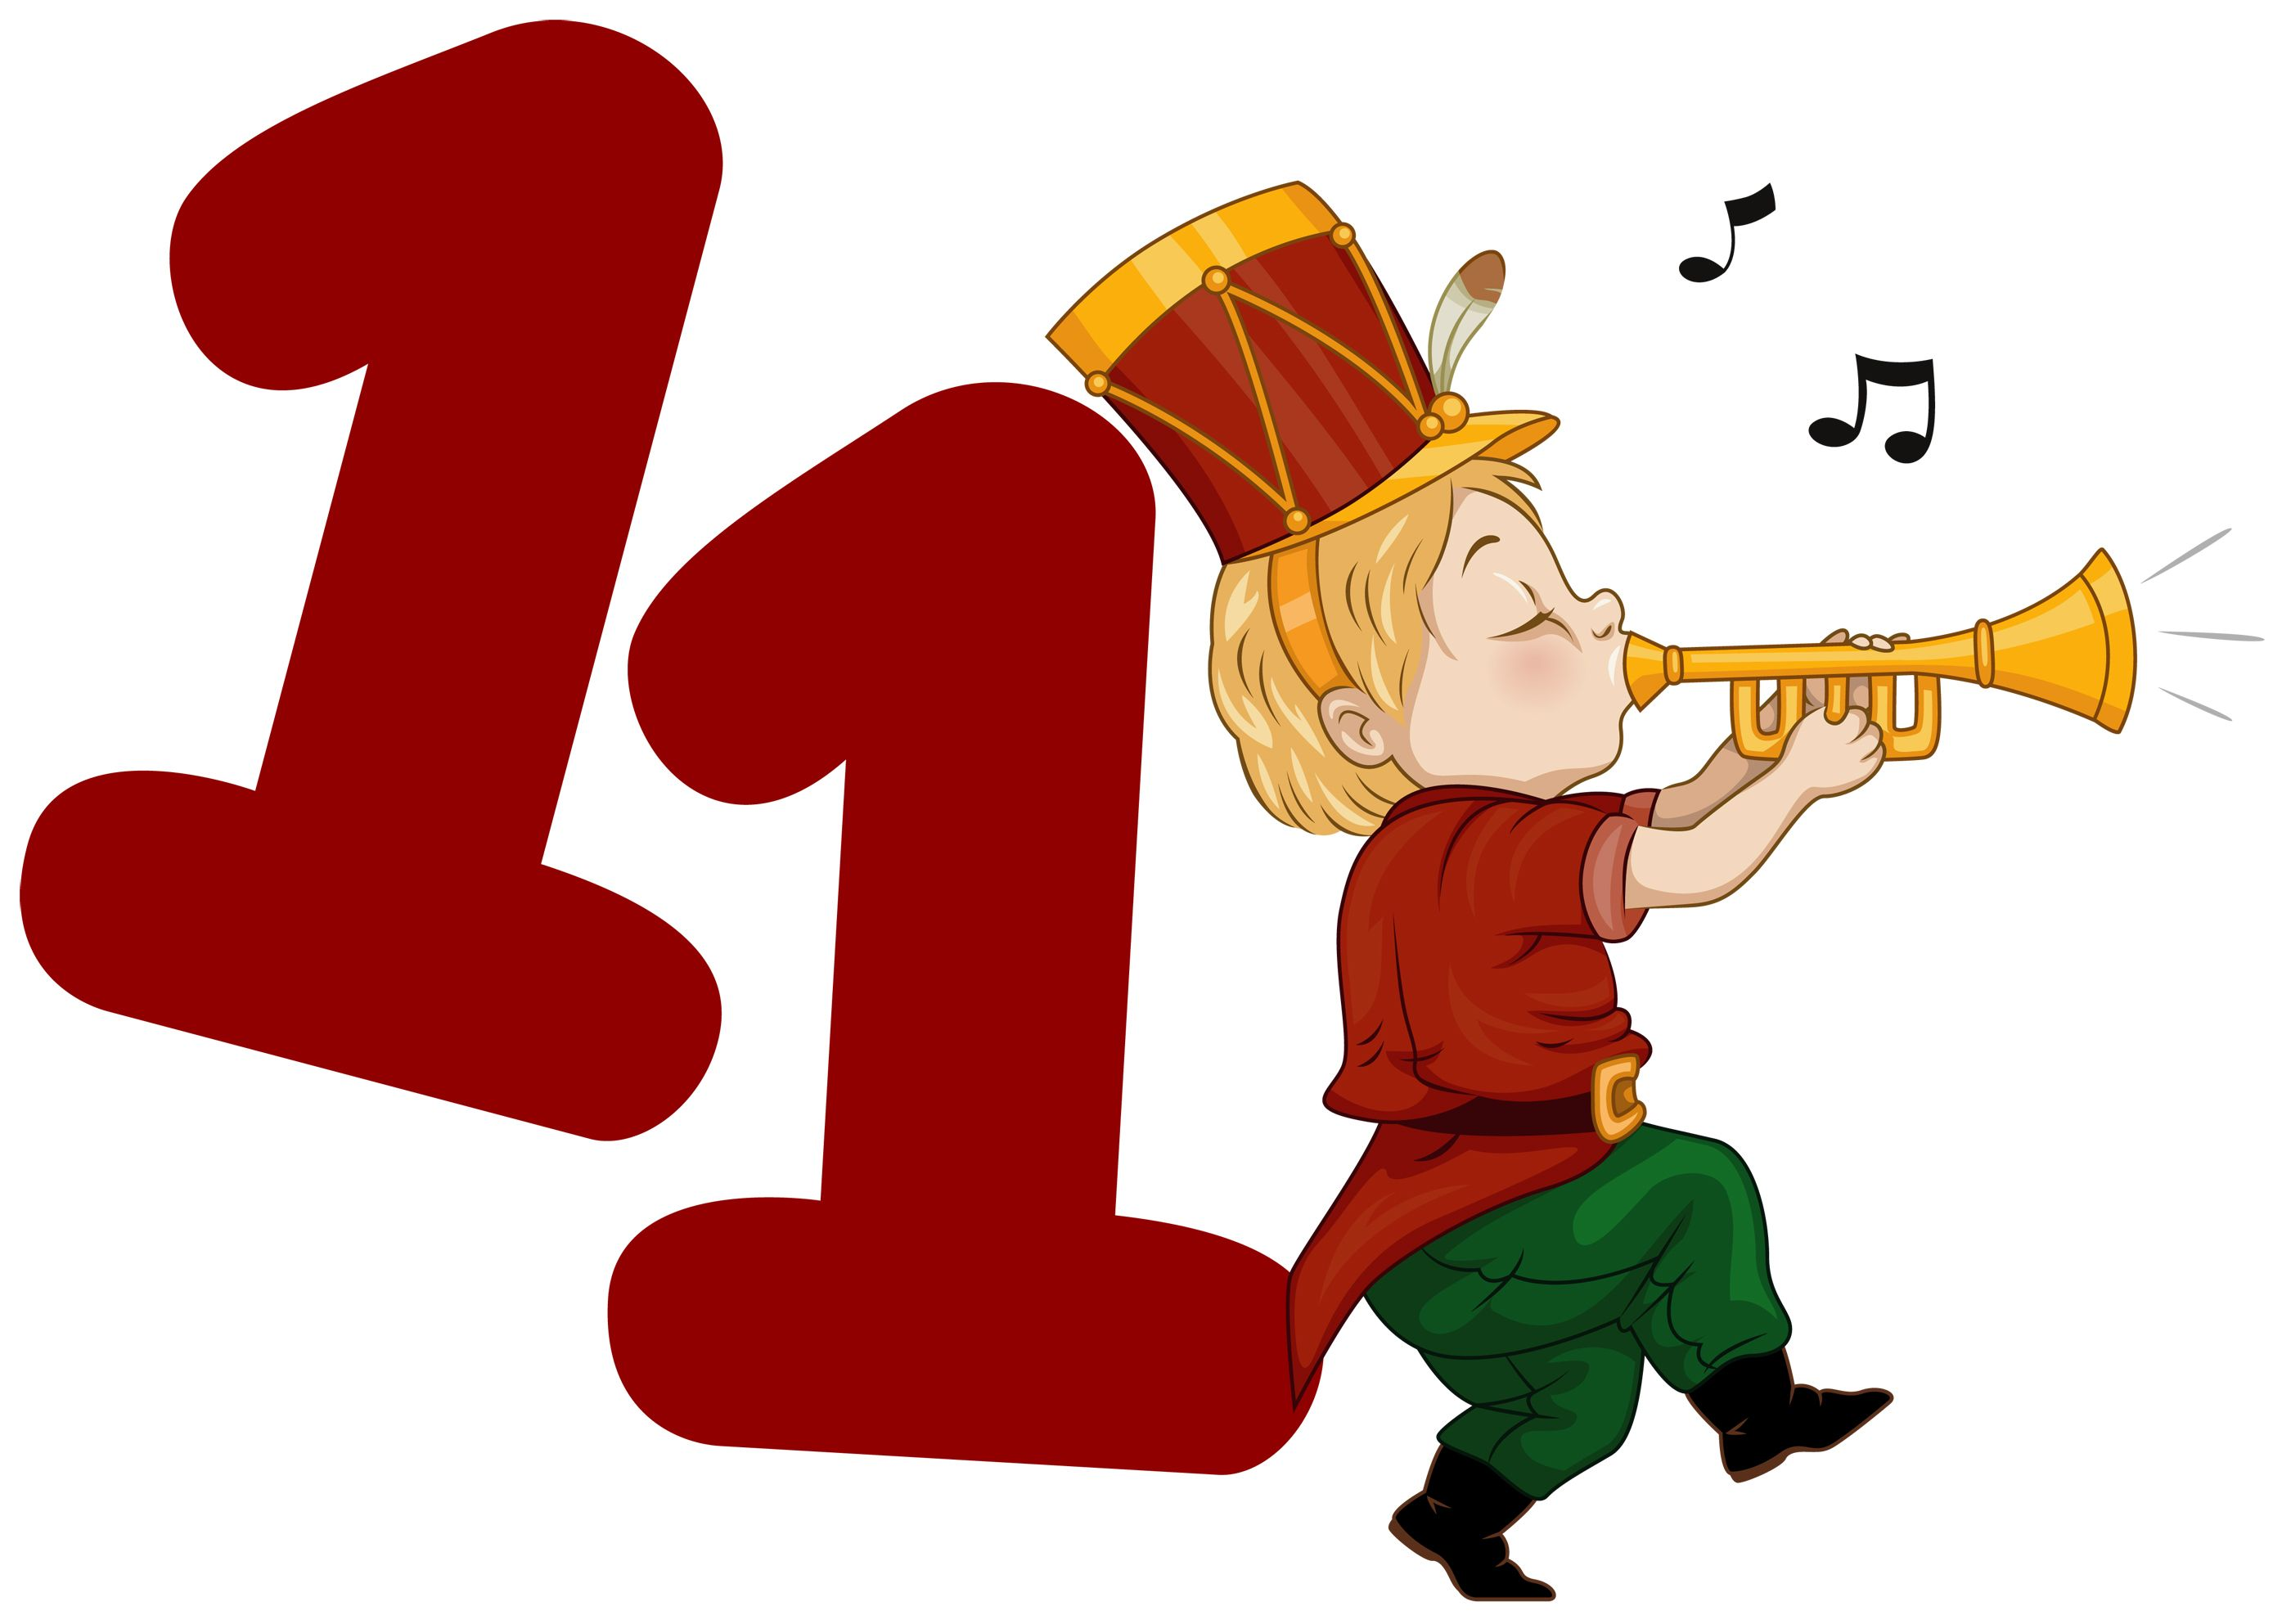 eleven pipers piping on the 11th day of christmas my true love gave to me 11 pipers piping